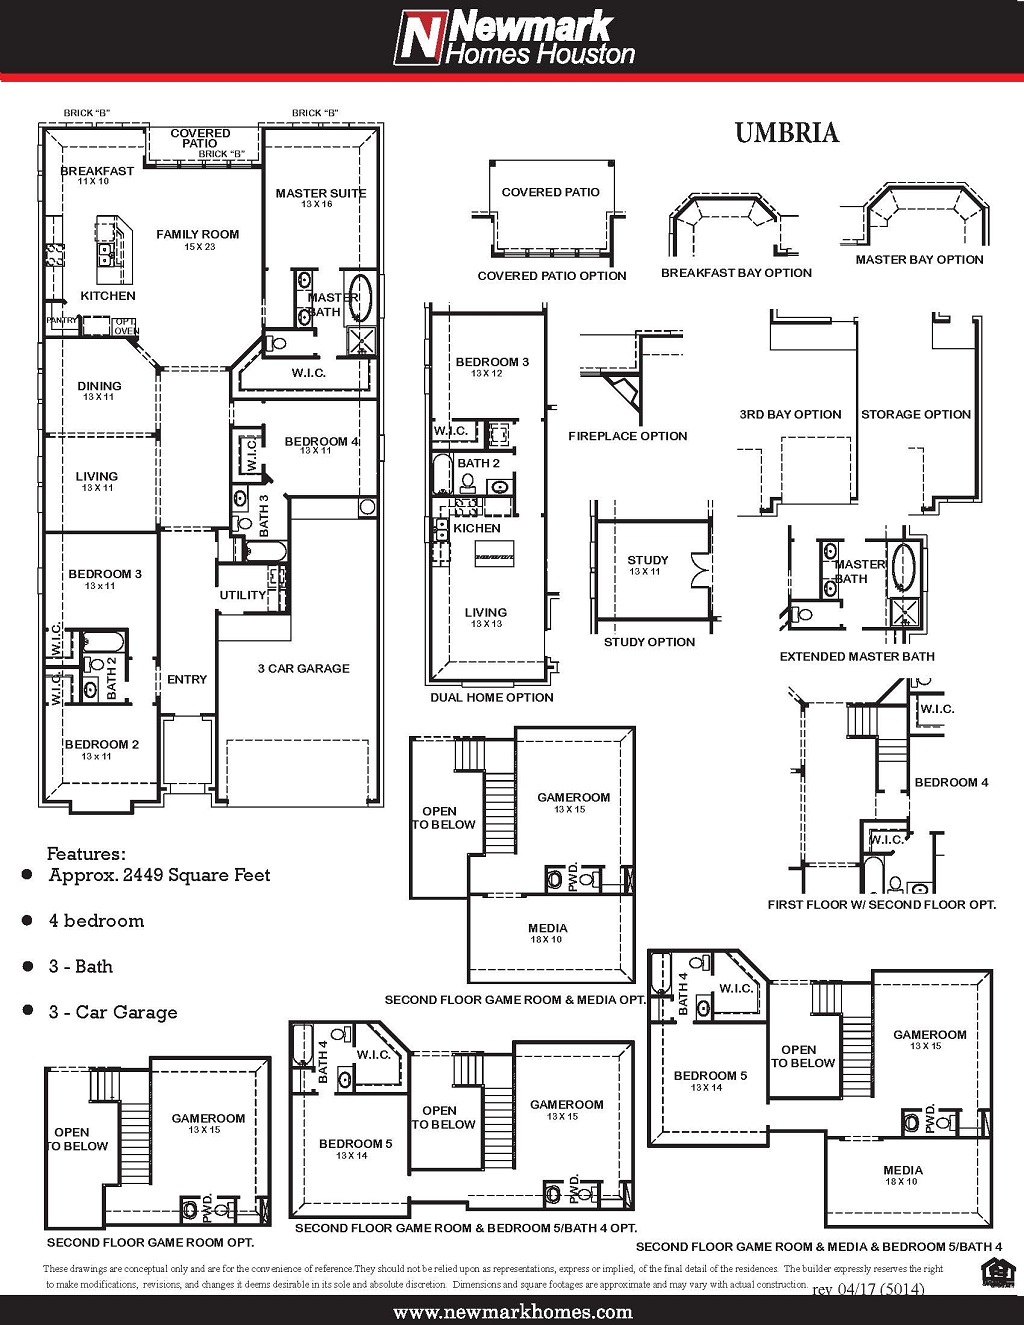 5014 Umbria Floor Plan